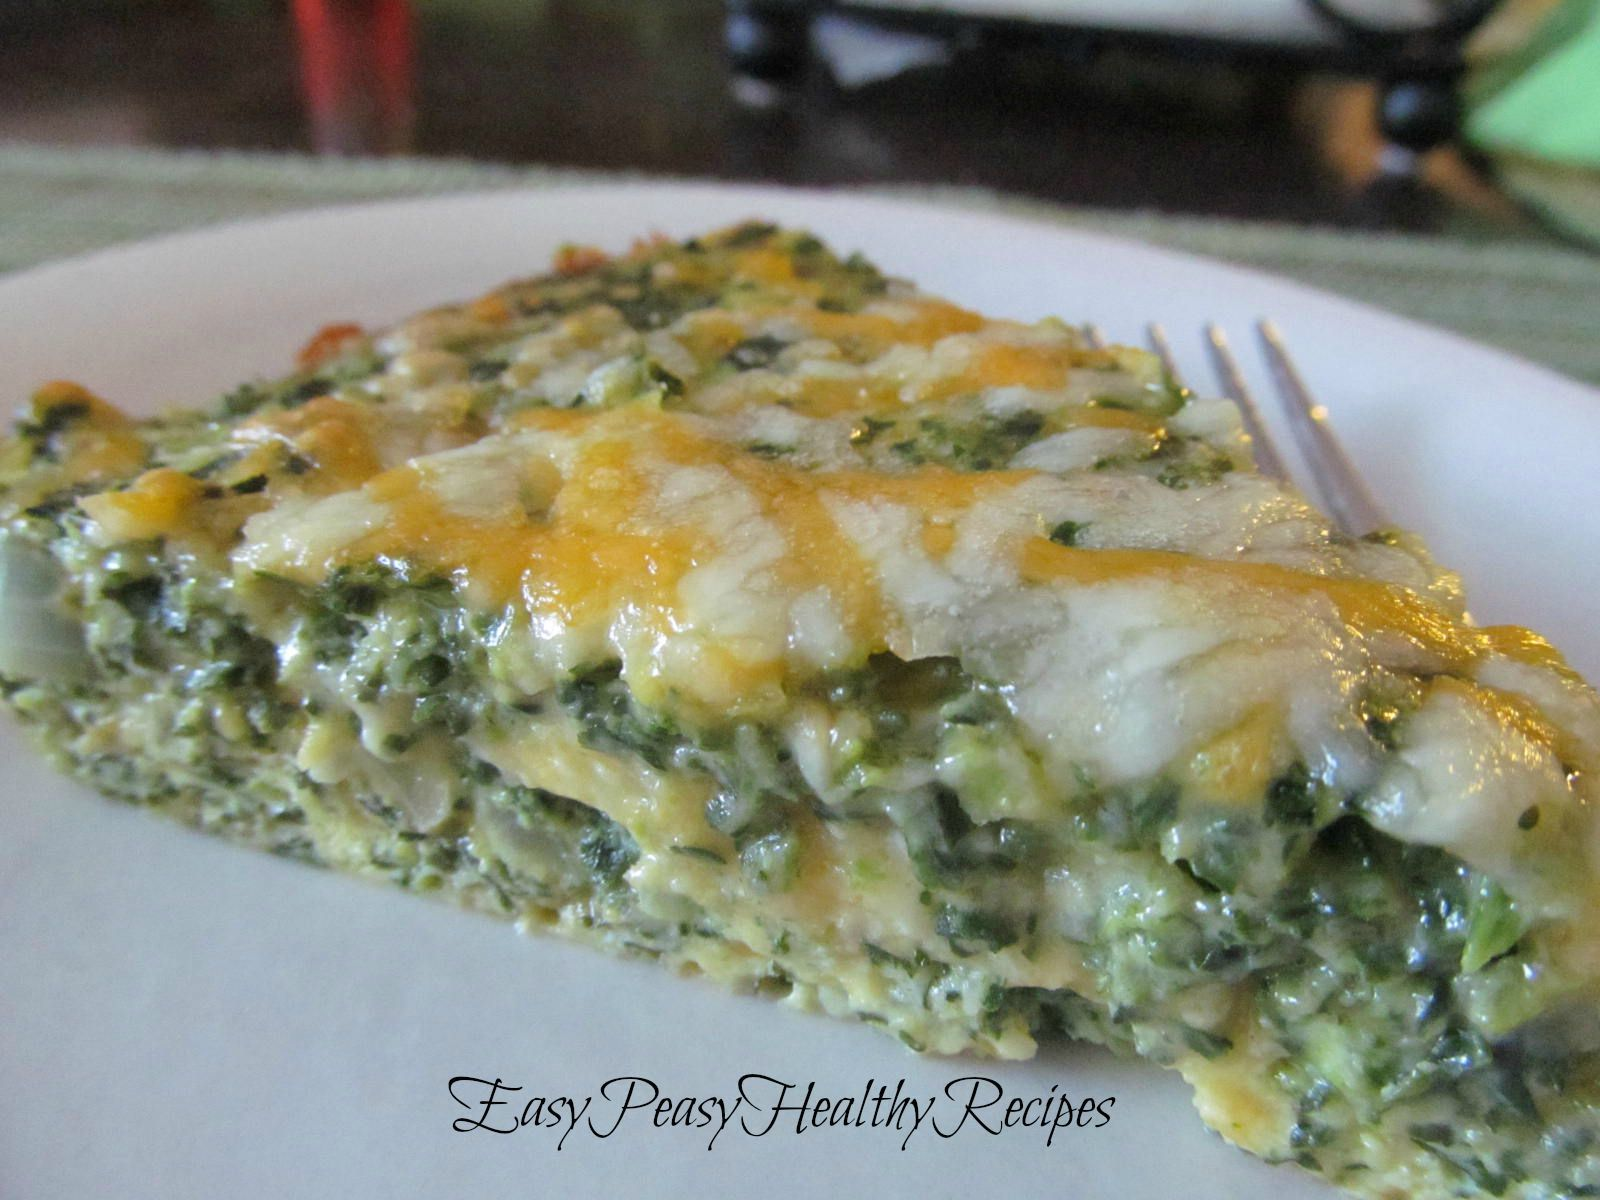 Easy Peasy Healthy Recipes Crustless Spinach Quiche Low Carb And Super Yummy